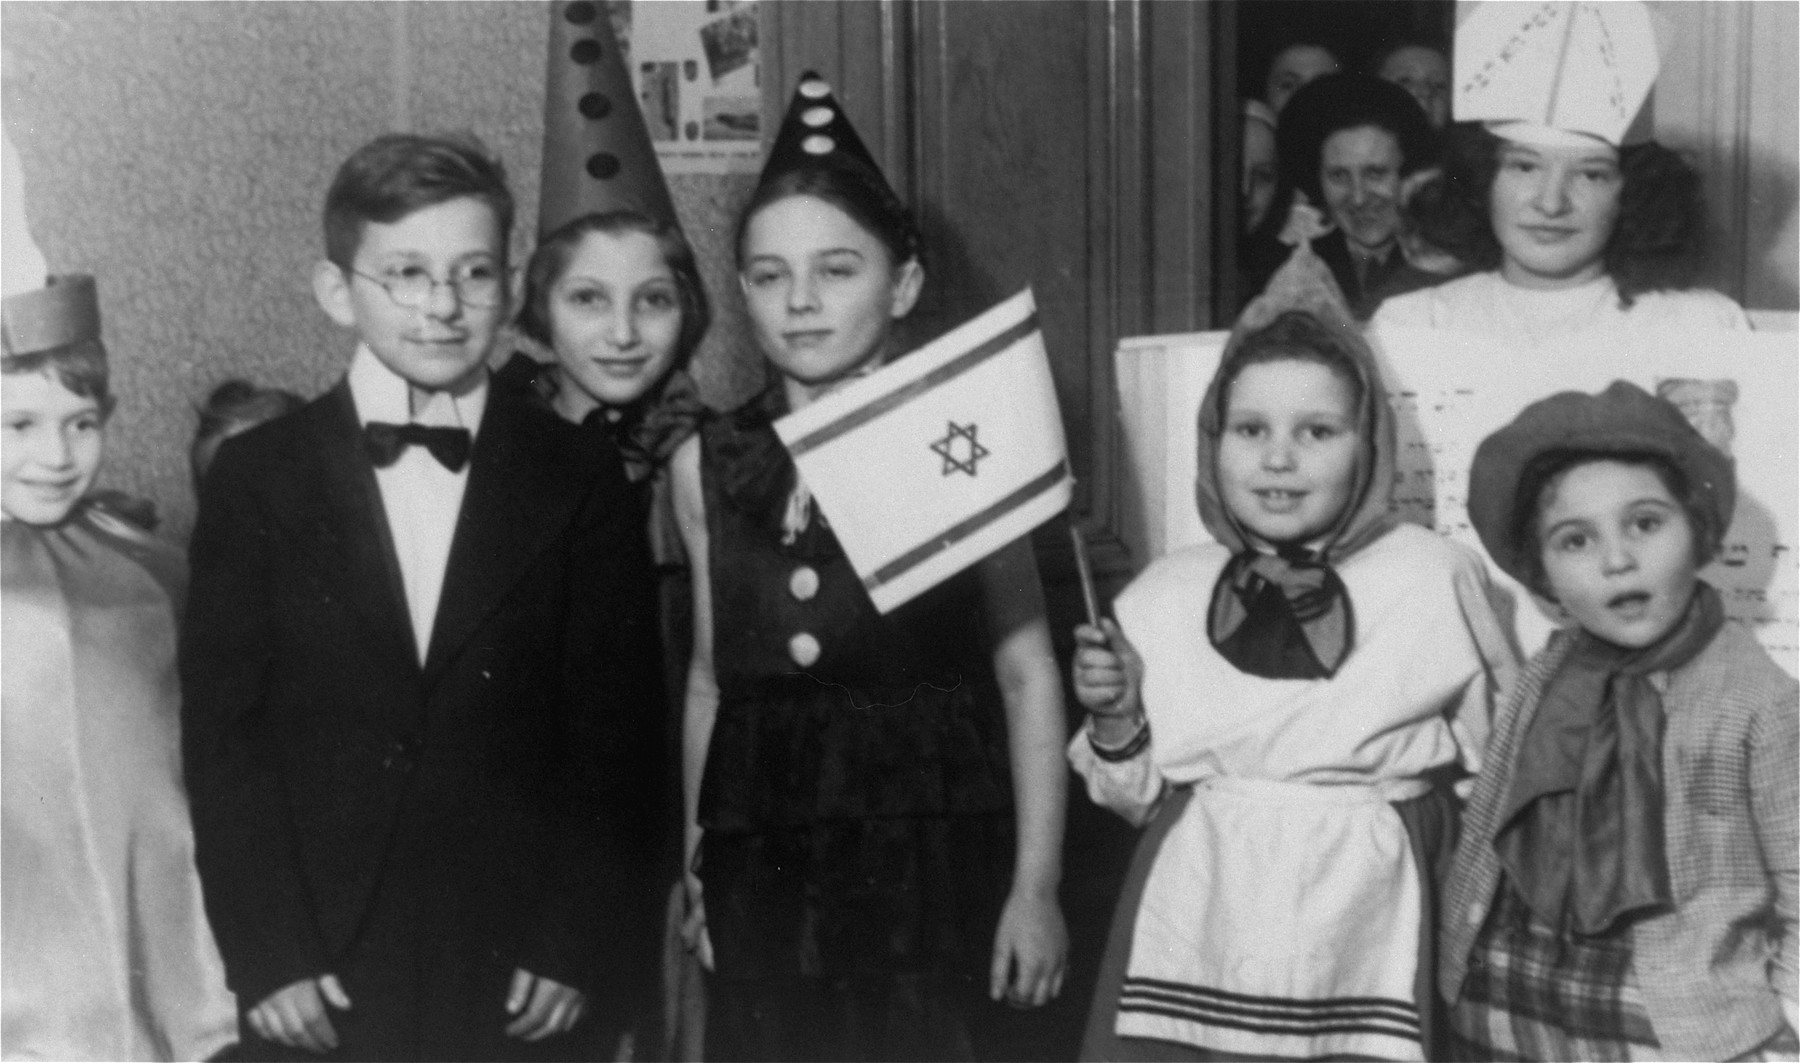 Purim celebration for Jewish children at an orphanage in Lodz run by the Koordynacja (Coordination Committee).   All of the children at the home had been hidden by Christian families during the war.  Pictured from left to right are: unknown, Leon, unknown, Nania Susel, Basia, Renia, and Rela (behind on the right).